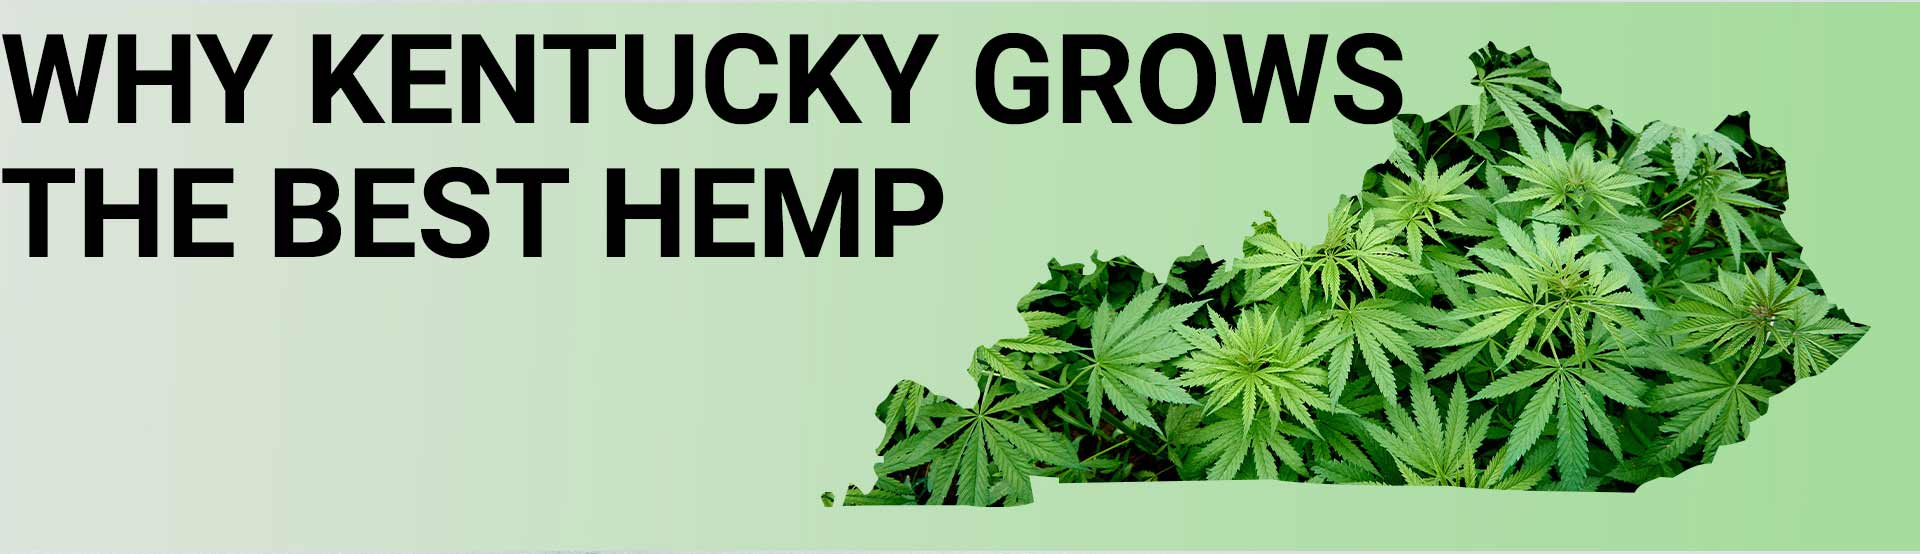 Why Kentucky Grows the Best Hemp - Hero Image